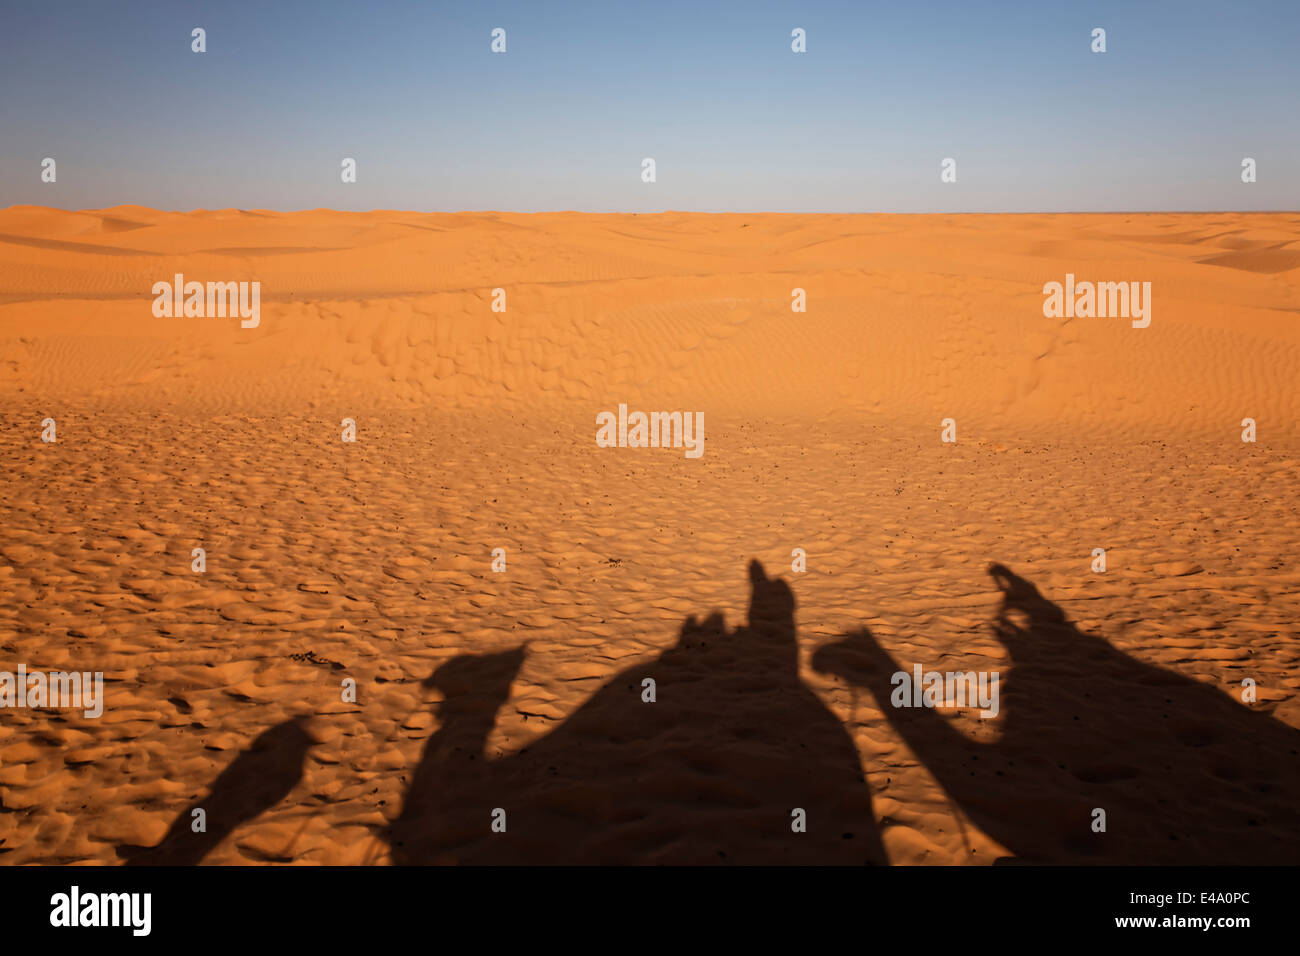 Africa, North Africa, Tunesia, Maghreb, Sahara near Ksar Ghilane, Shadows of a caravan with dromedaries and tourists - Stock Image